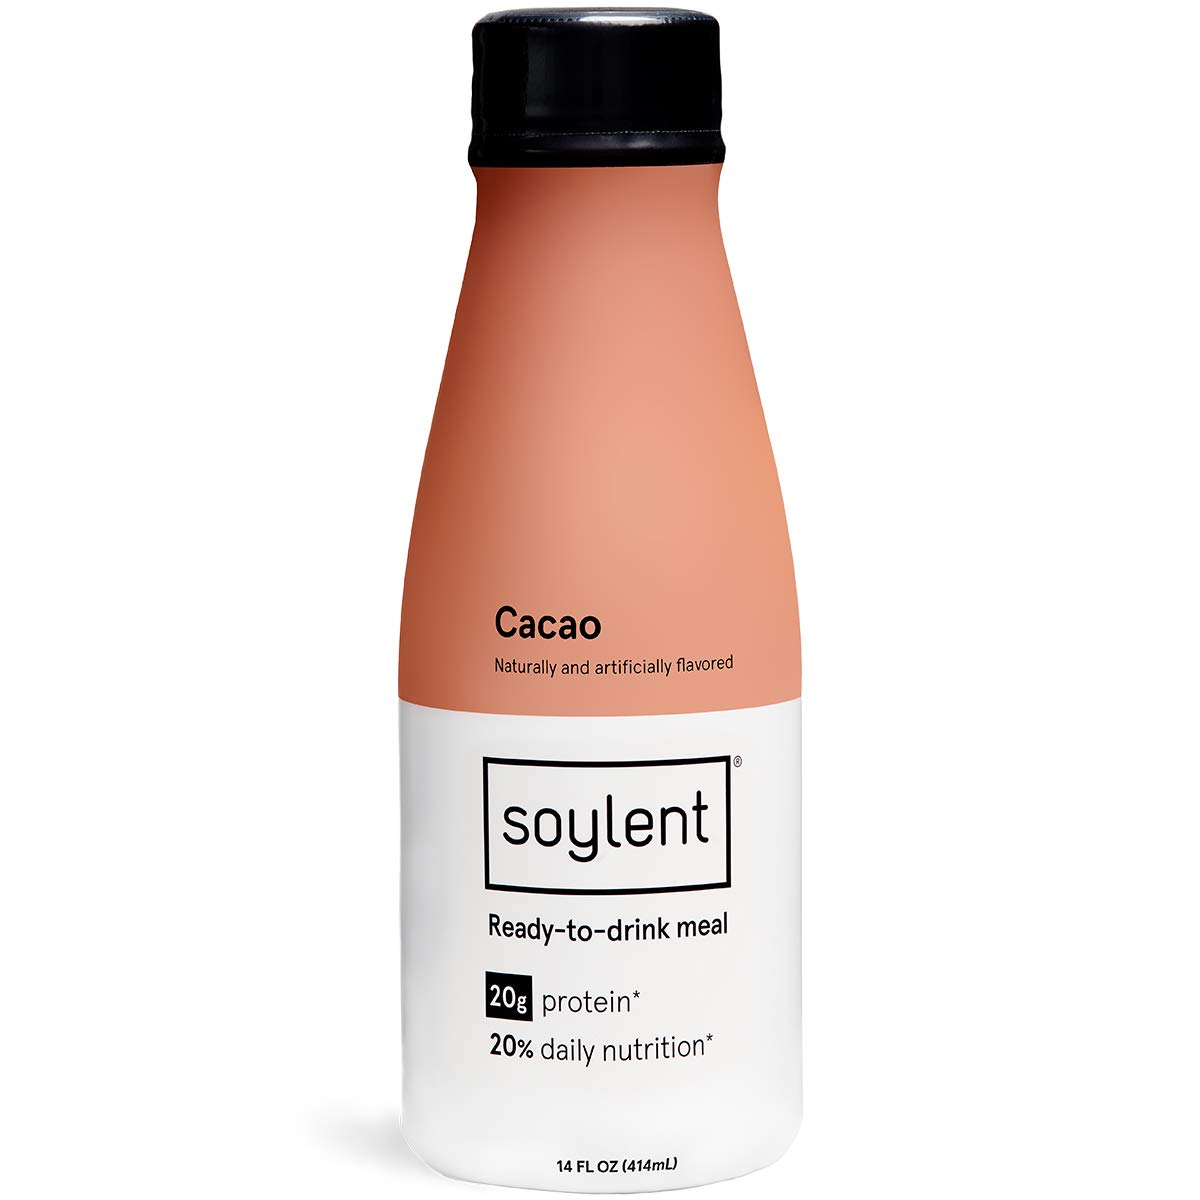 Cacao Soylent Meal Replacement Shake, Cacao, Complete Meal in a Bottle, 20g Plant Protein, 14 oz Bottles, 12 Pack by Soylent